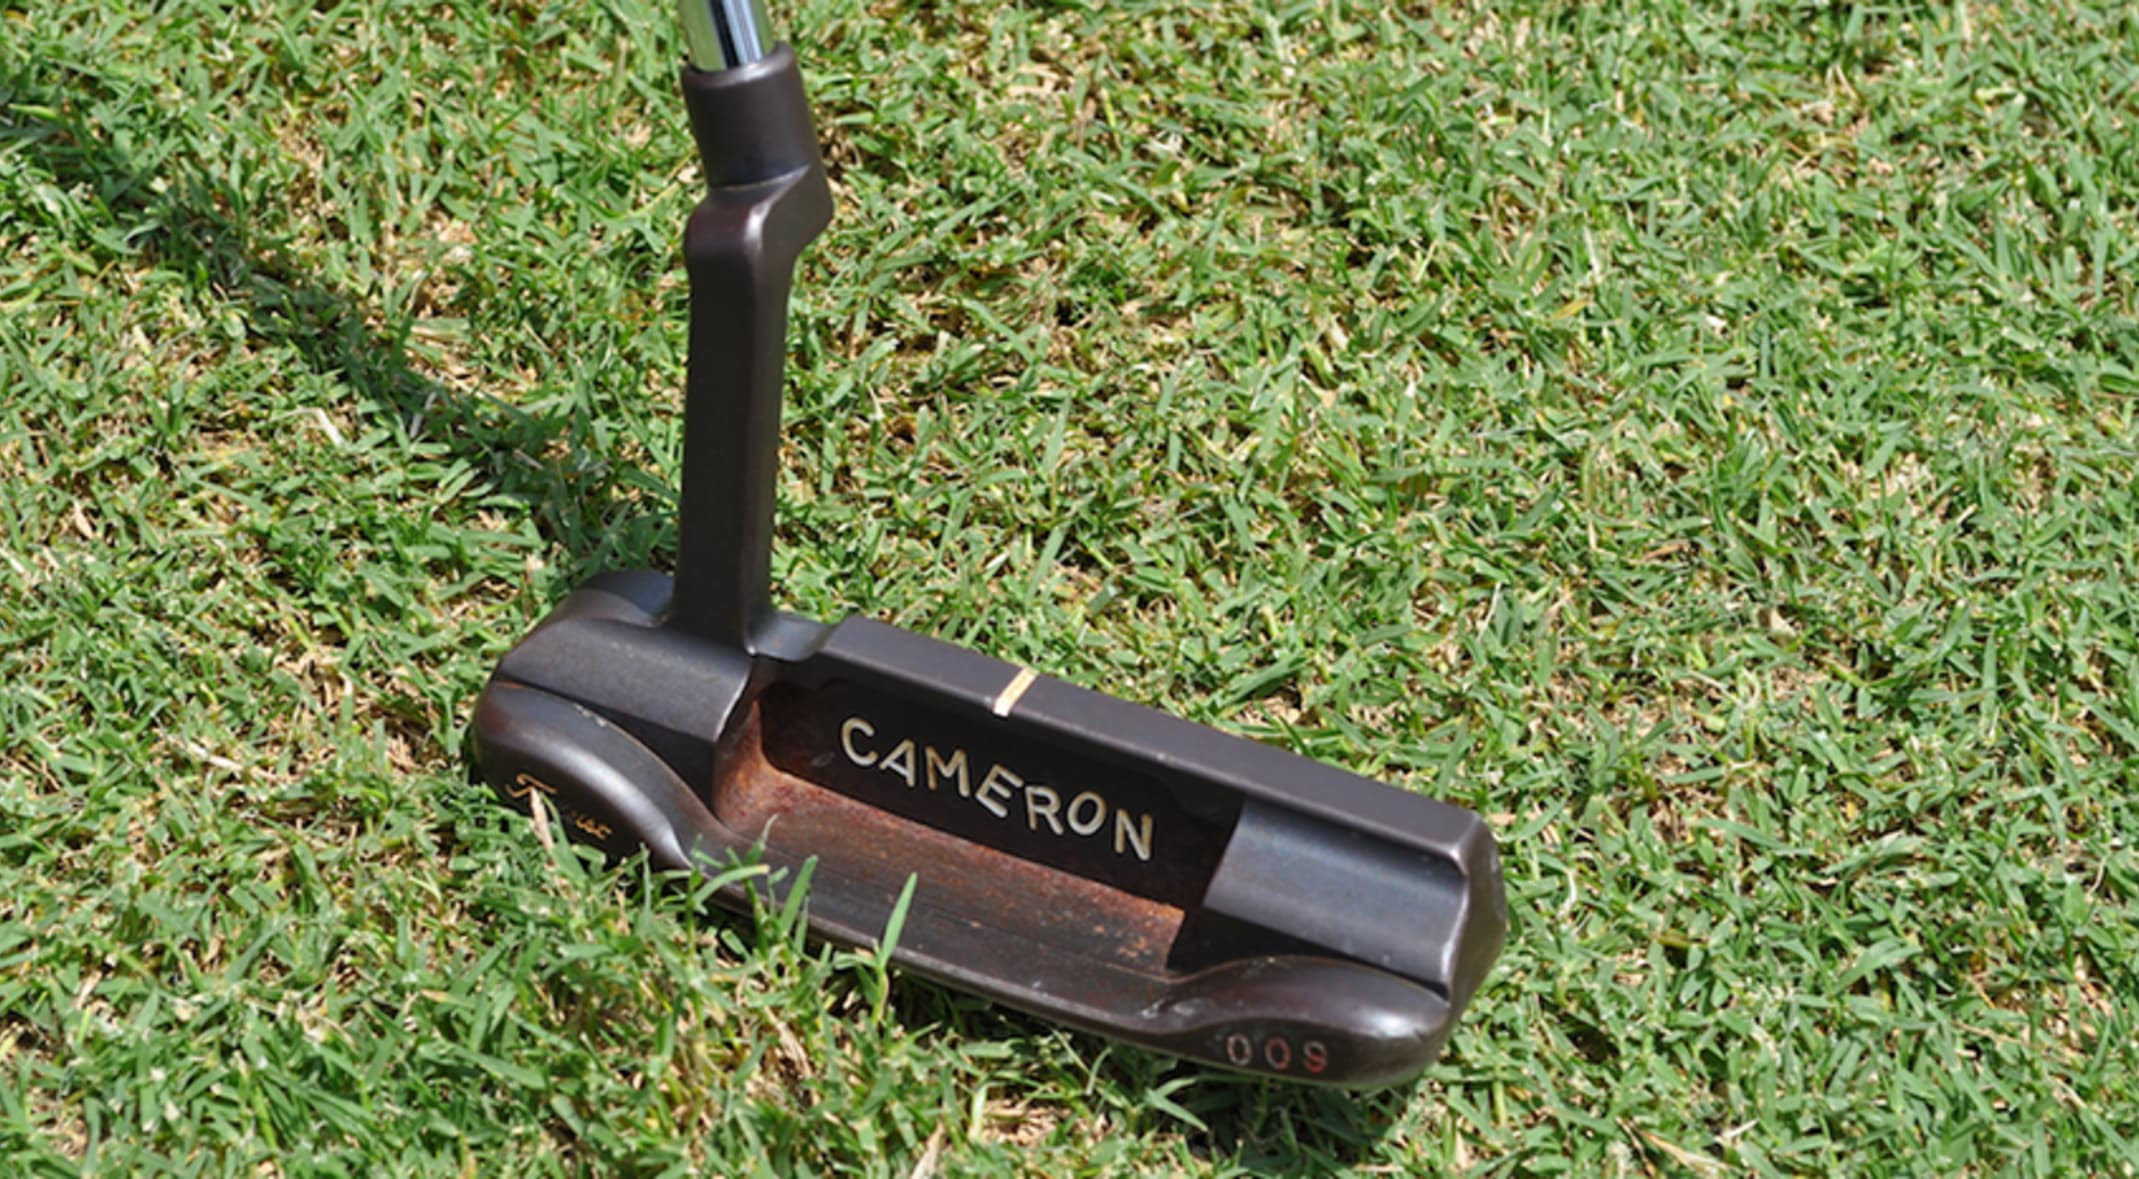 37711451d Jordan Spieth's Scotty Cameron putter guided him to a ninth TOUR  victory. (